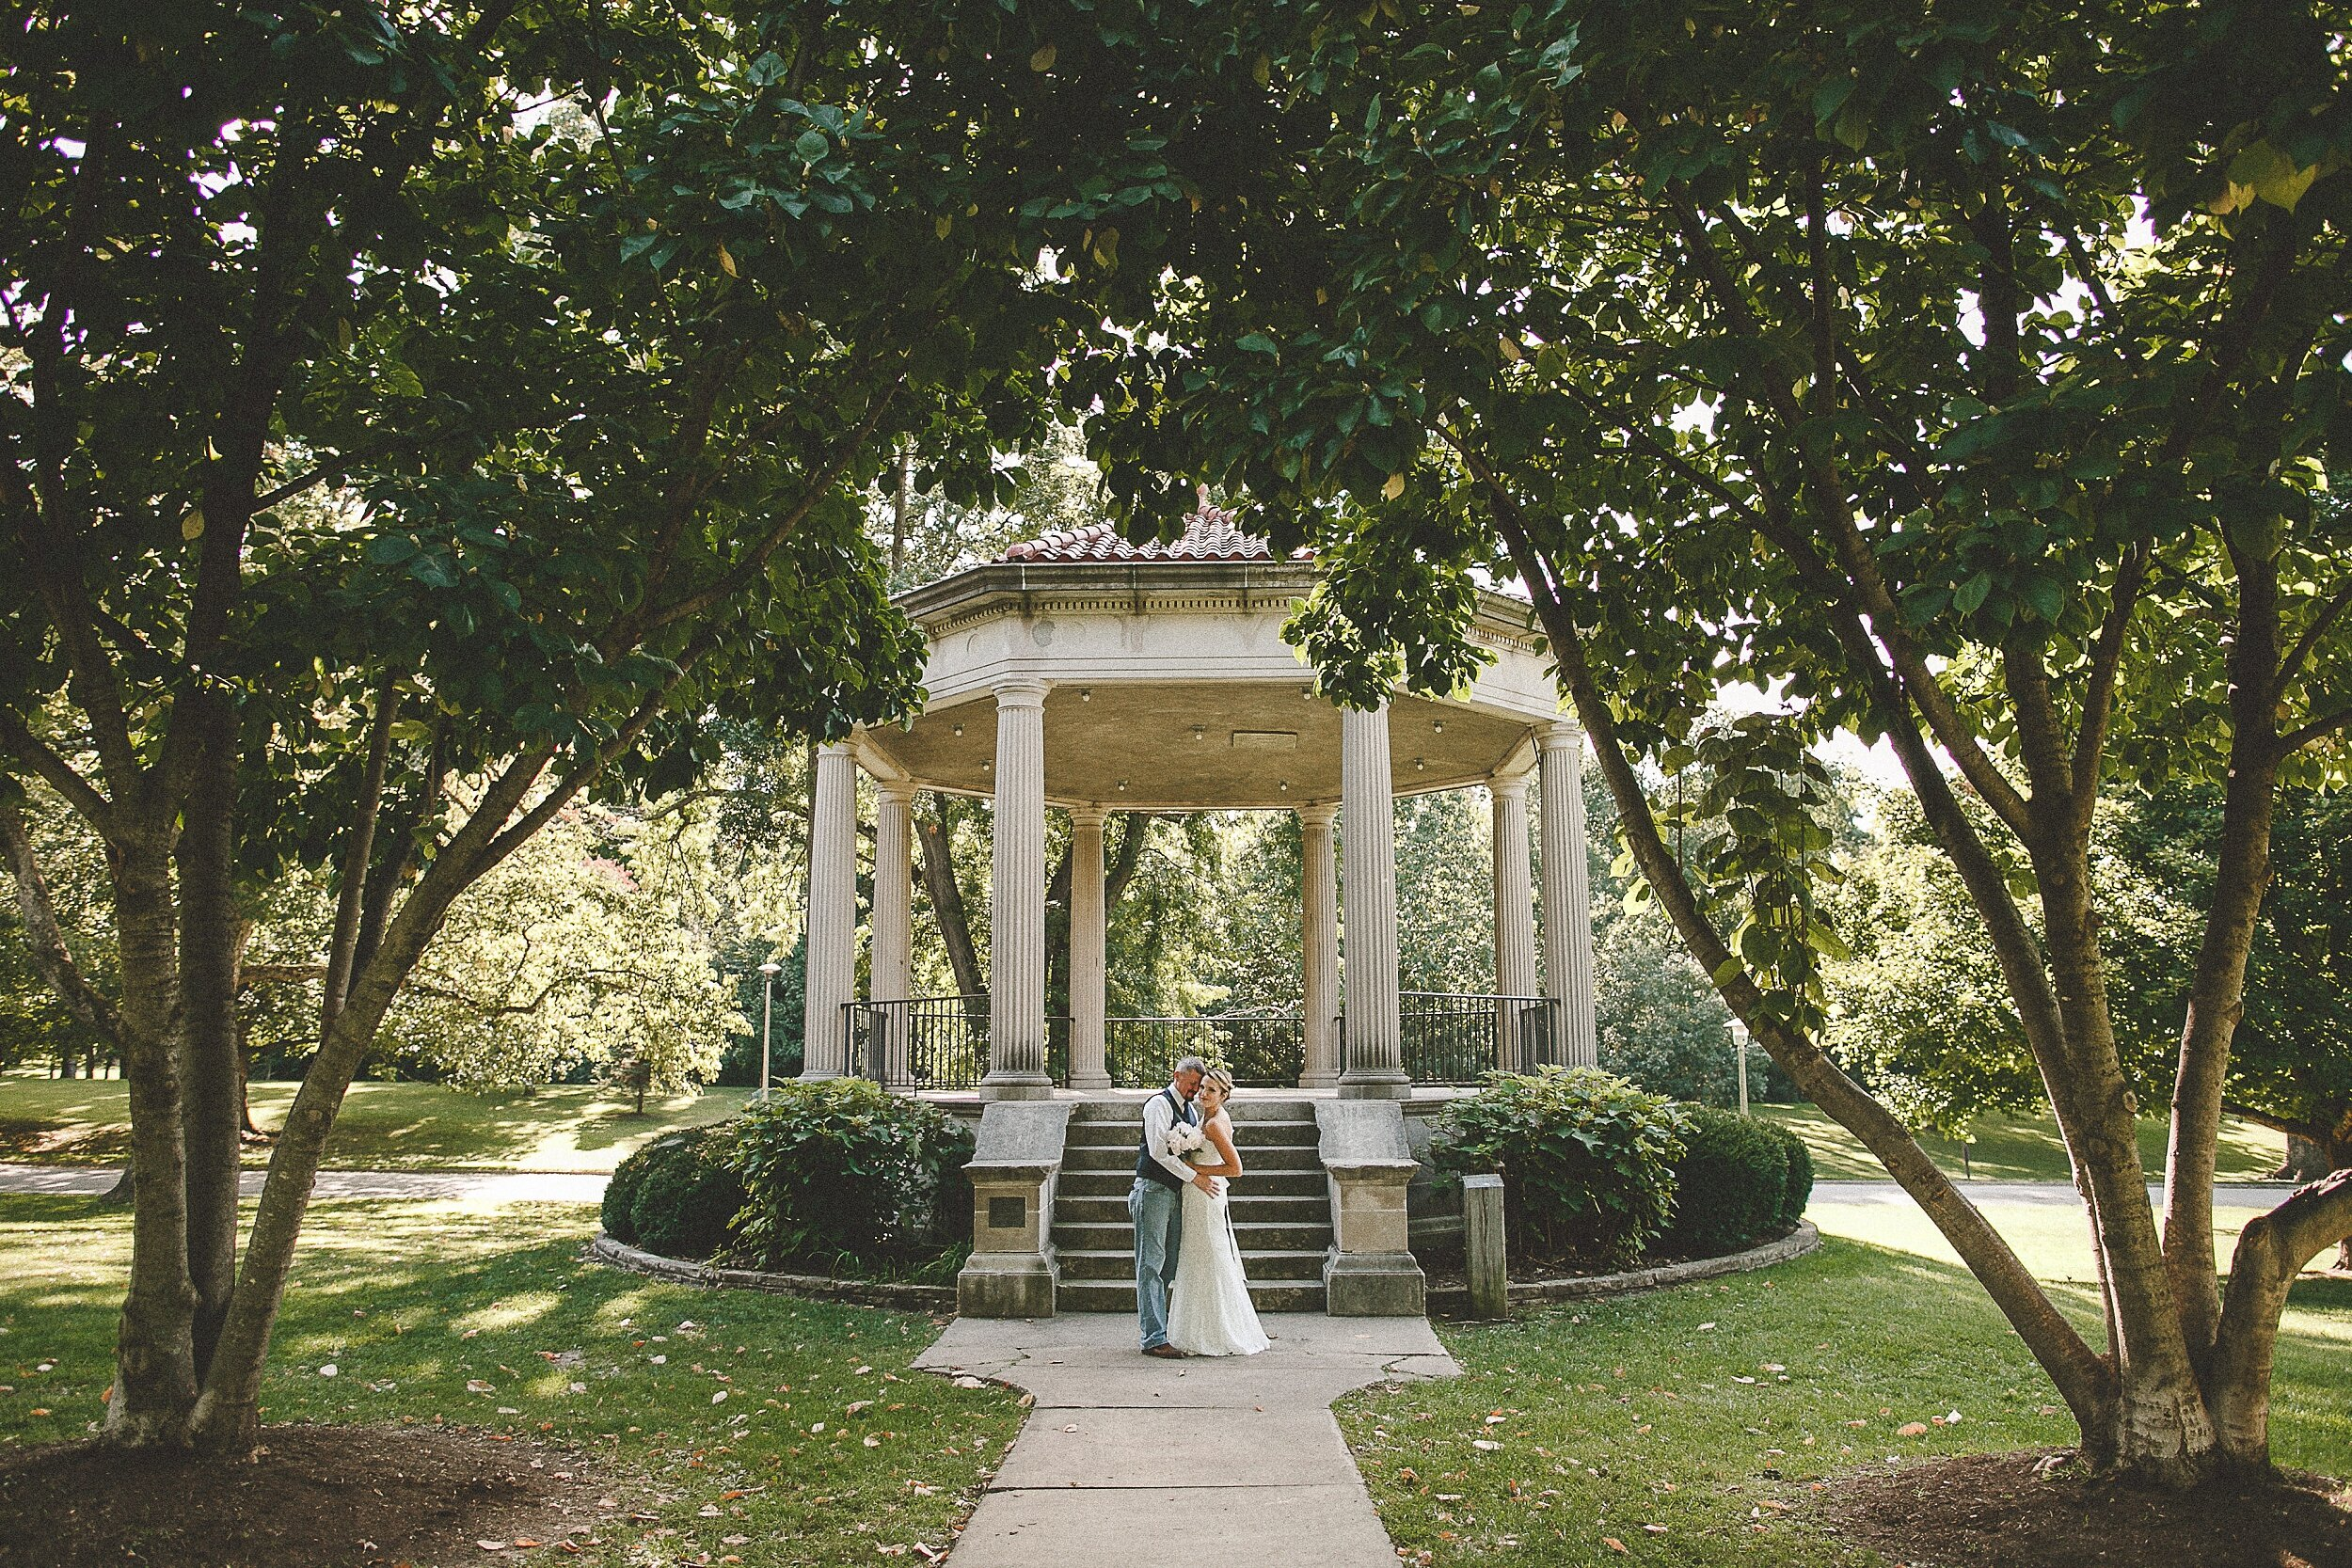 washington-park-gazebo-springfield-il-wedding-photography_0072.jpg